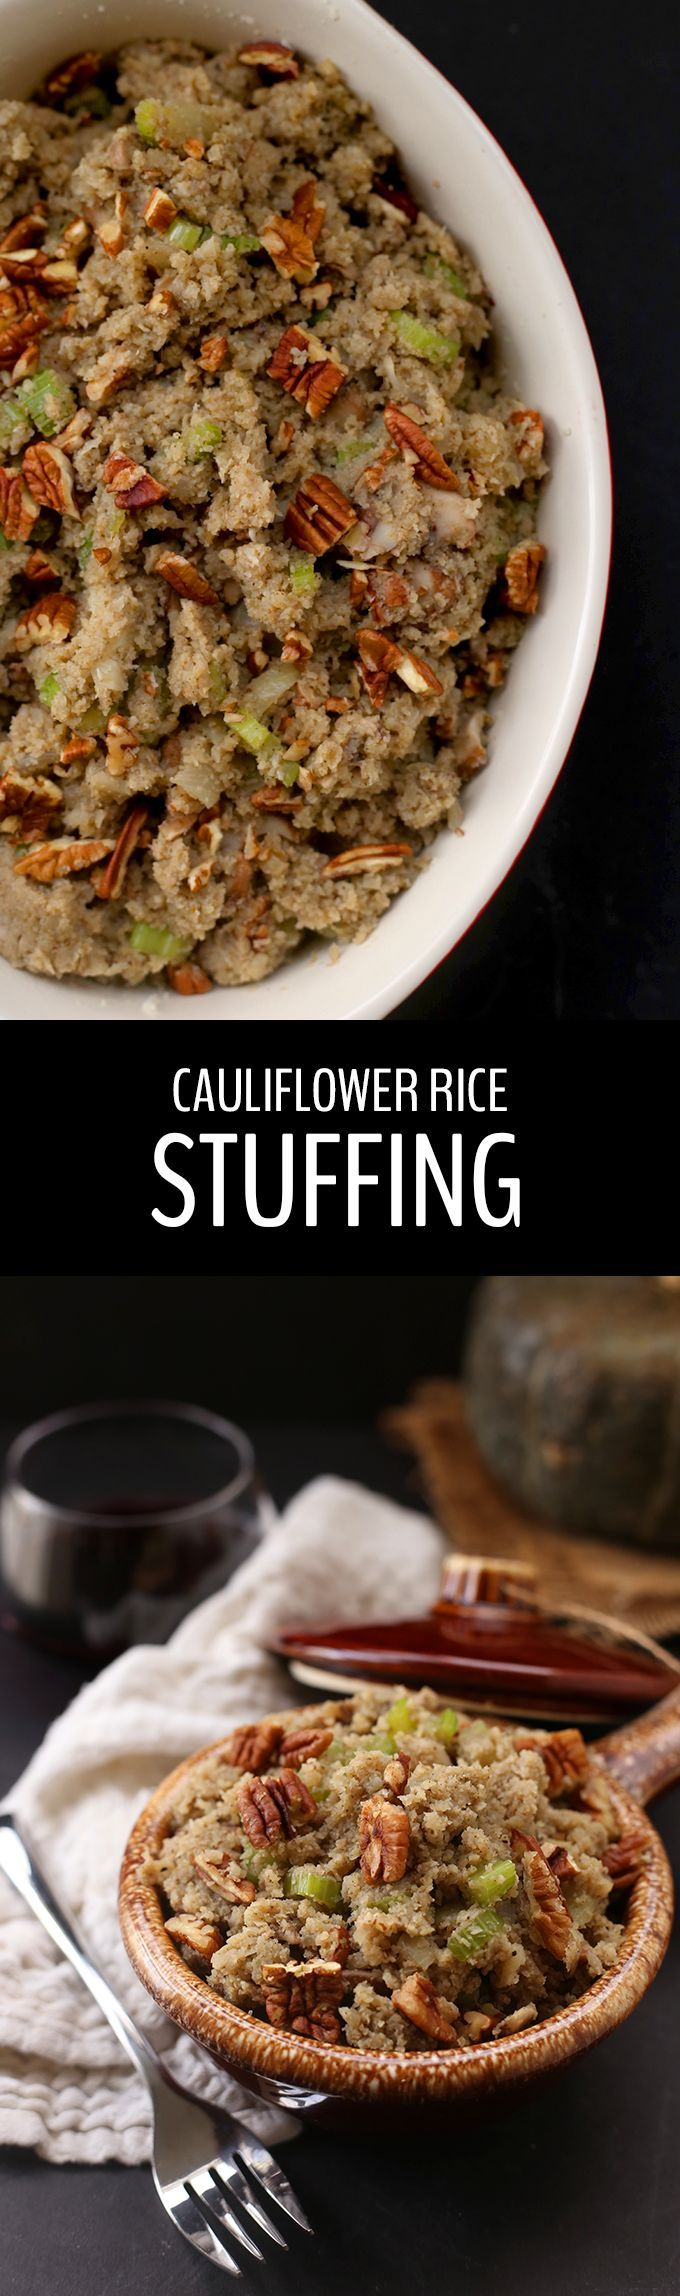 This healthy, low-carb cauliflower rice stuffing will convince your Thanksgiving guests to jump on board the cauliflower rice train, while secretly getting them to eat more veggies! Plus it's ready in under 20 minutes.